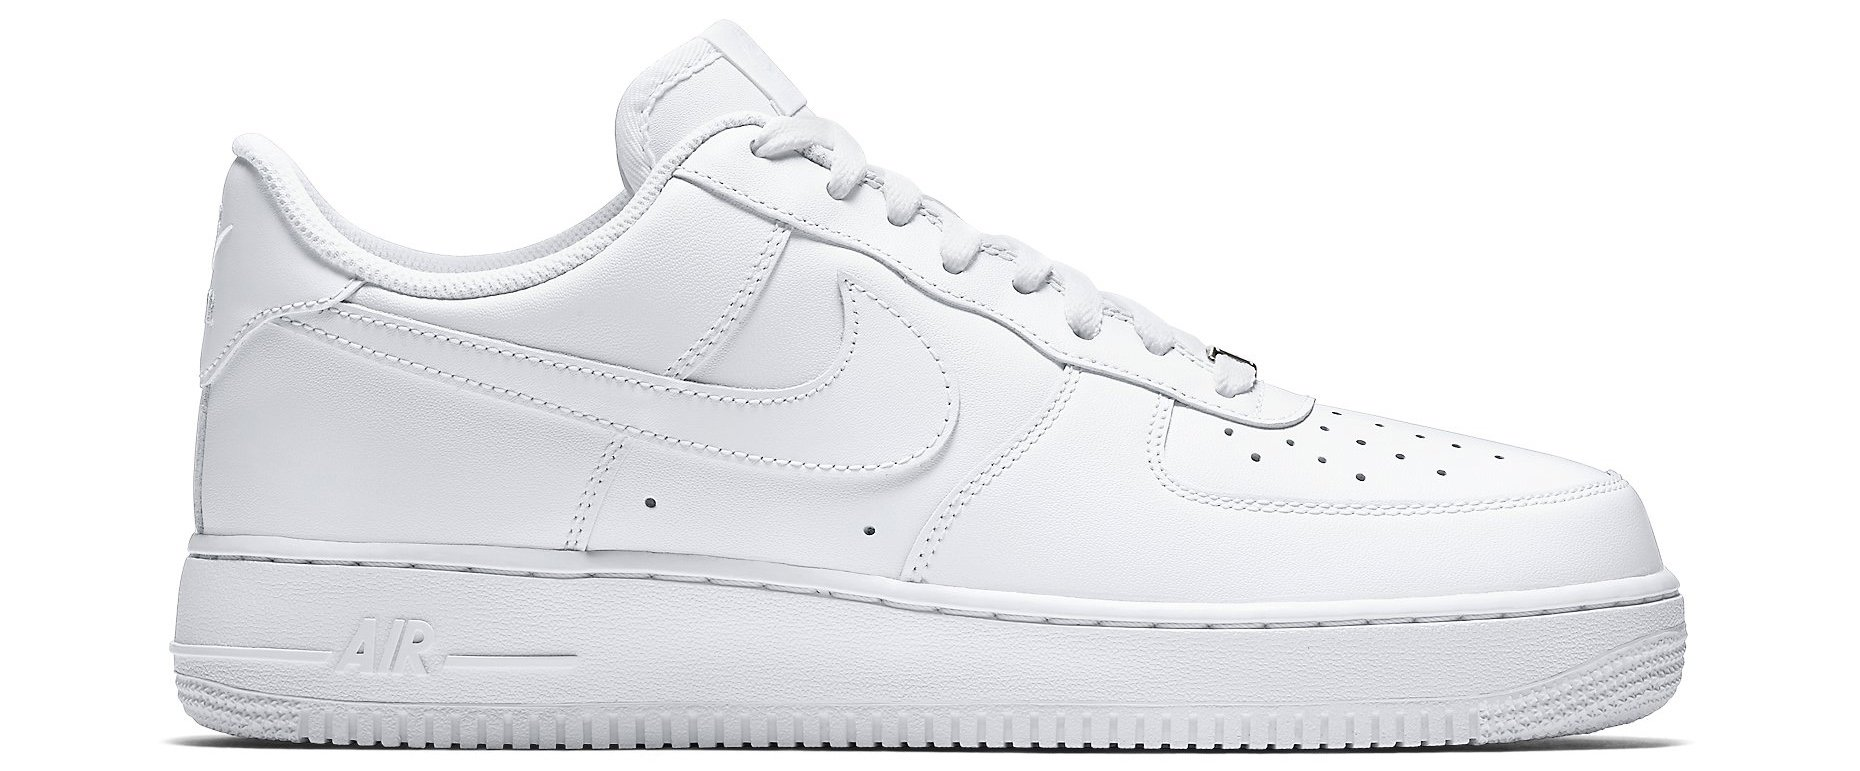 Boty Nike Air Force 1 ´07